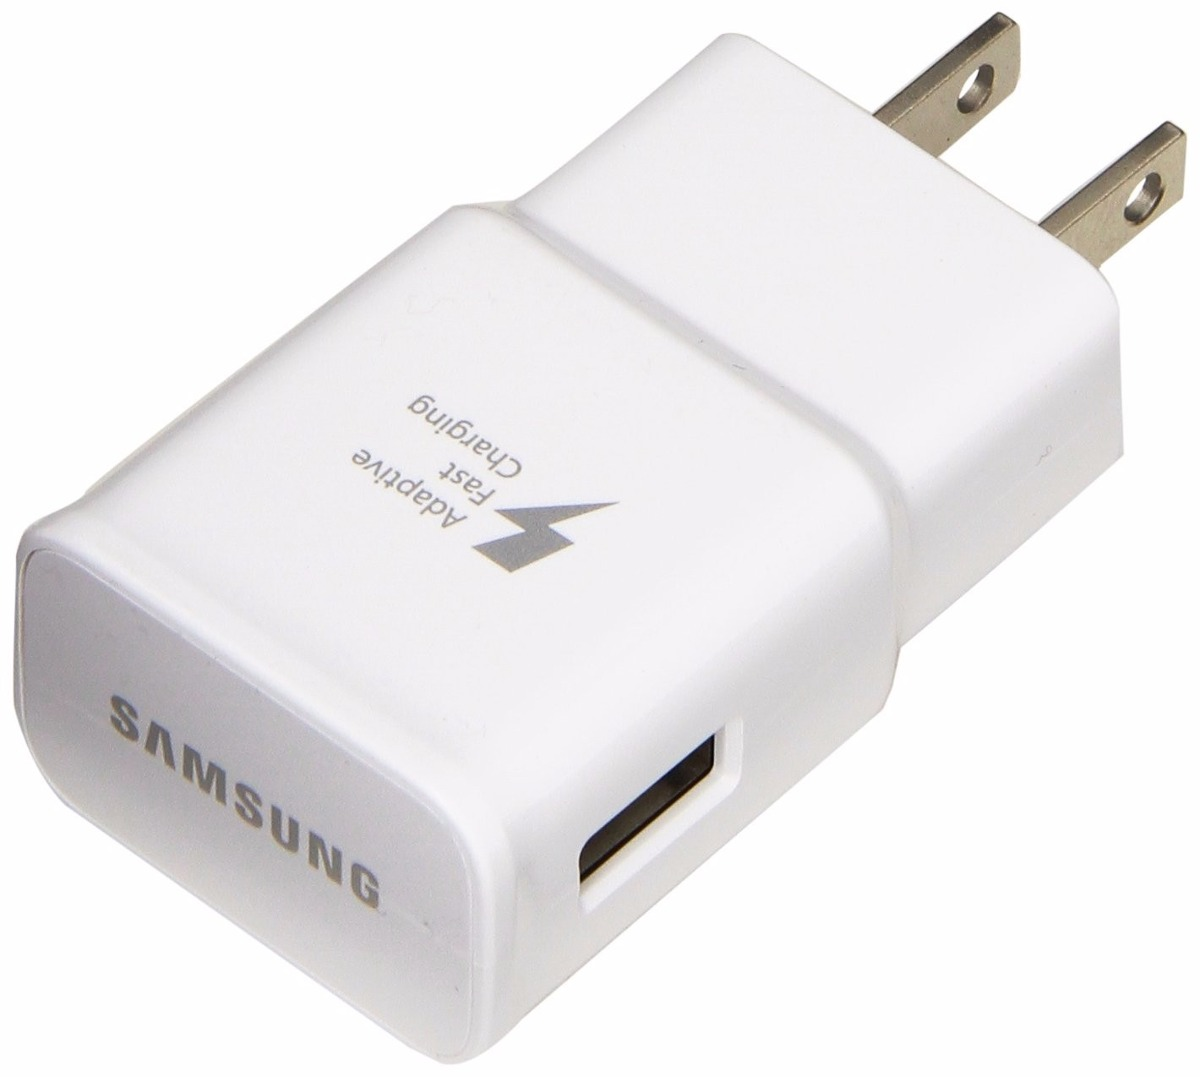 Samsung cargador adaptable $ 3,59 USD